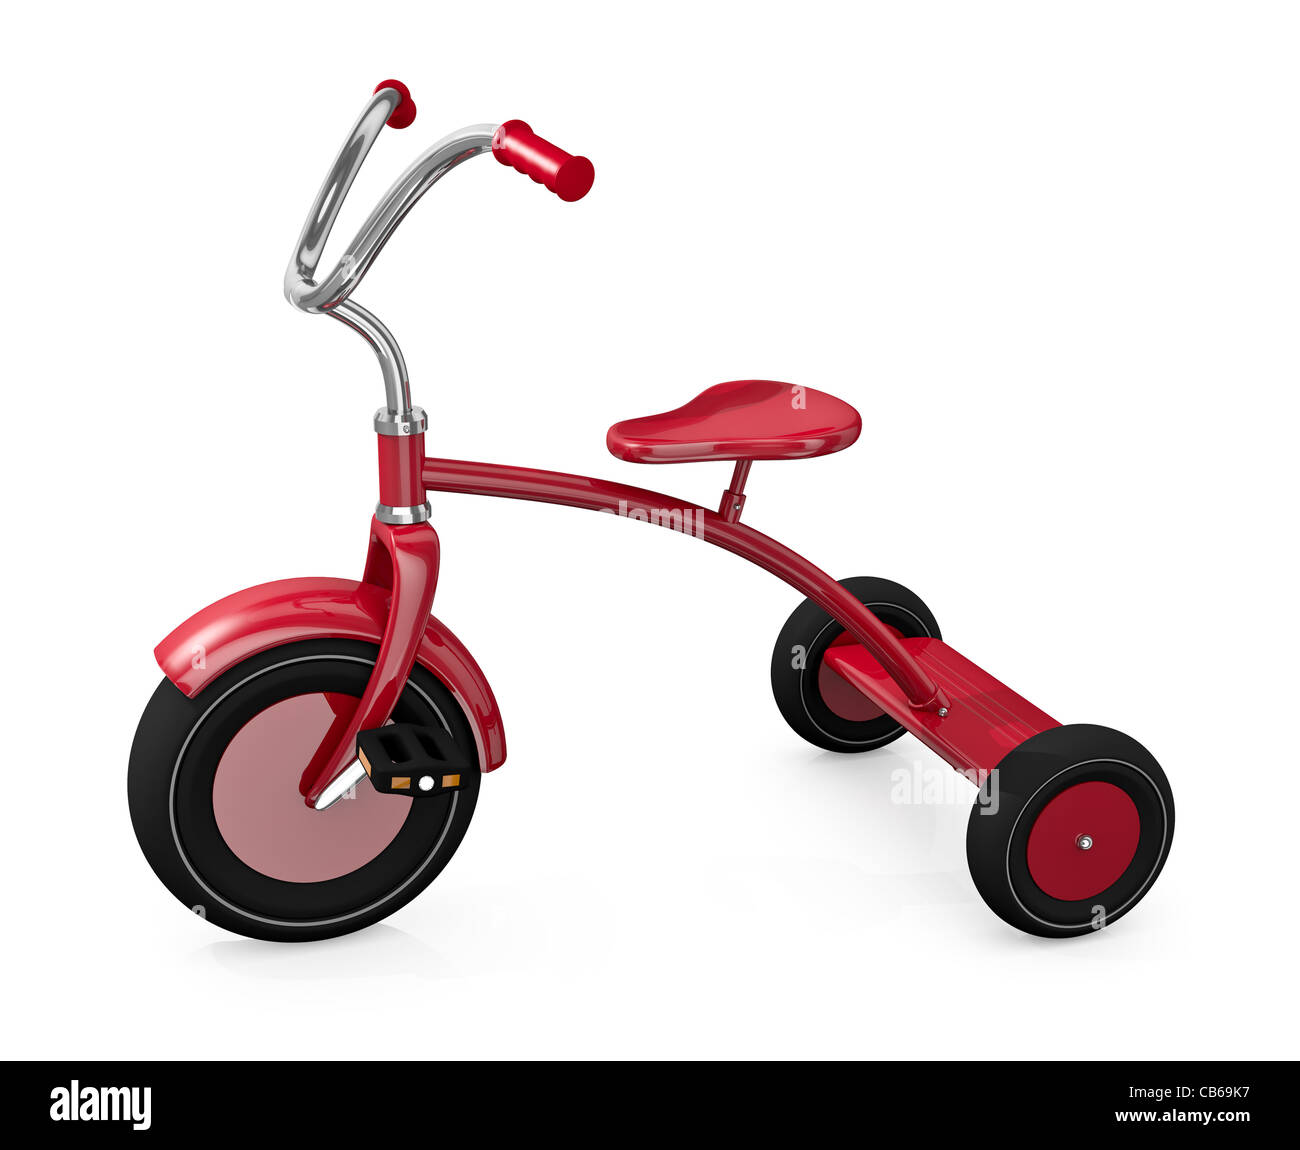 Red tricycle - Stock Image